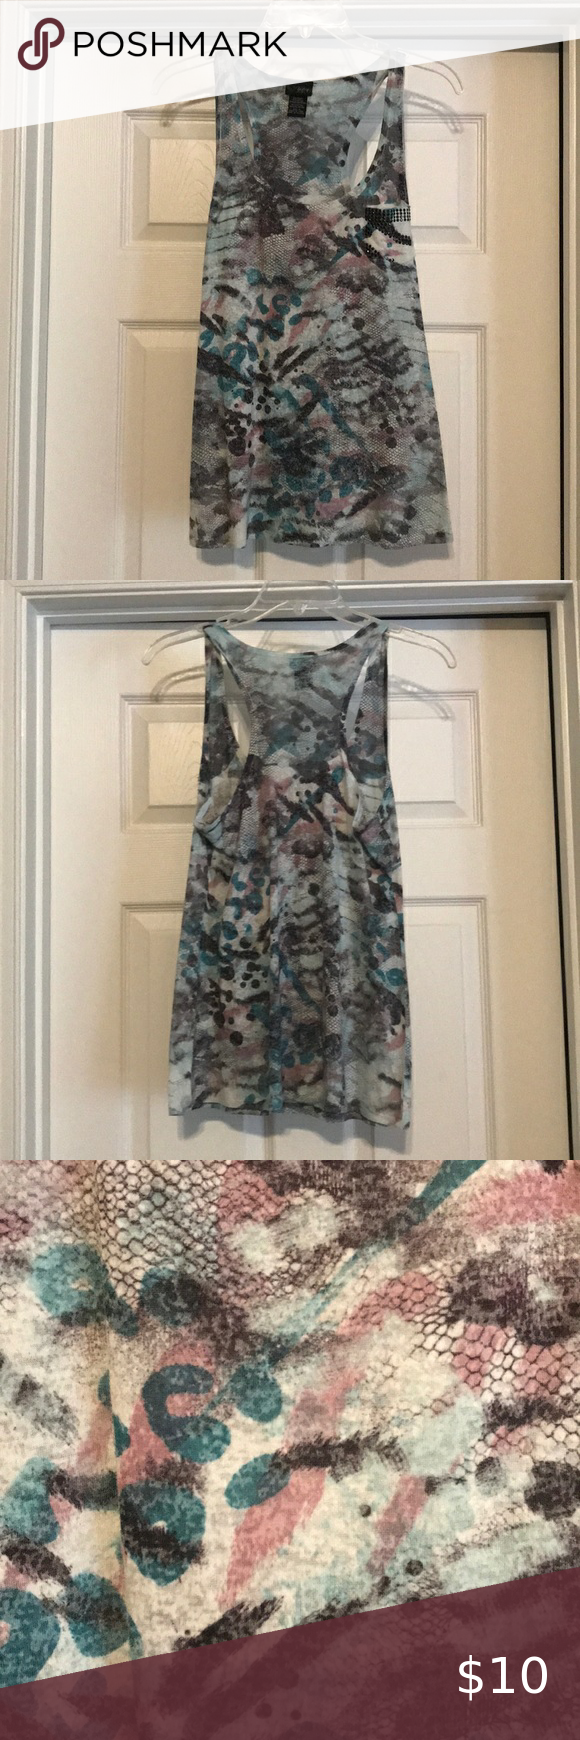 Tank Top from Buckle Tank Top from Buckle - great condition - smoke free home - asking $10 Daytrip Tops Tank Tops